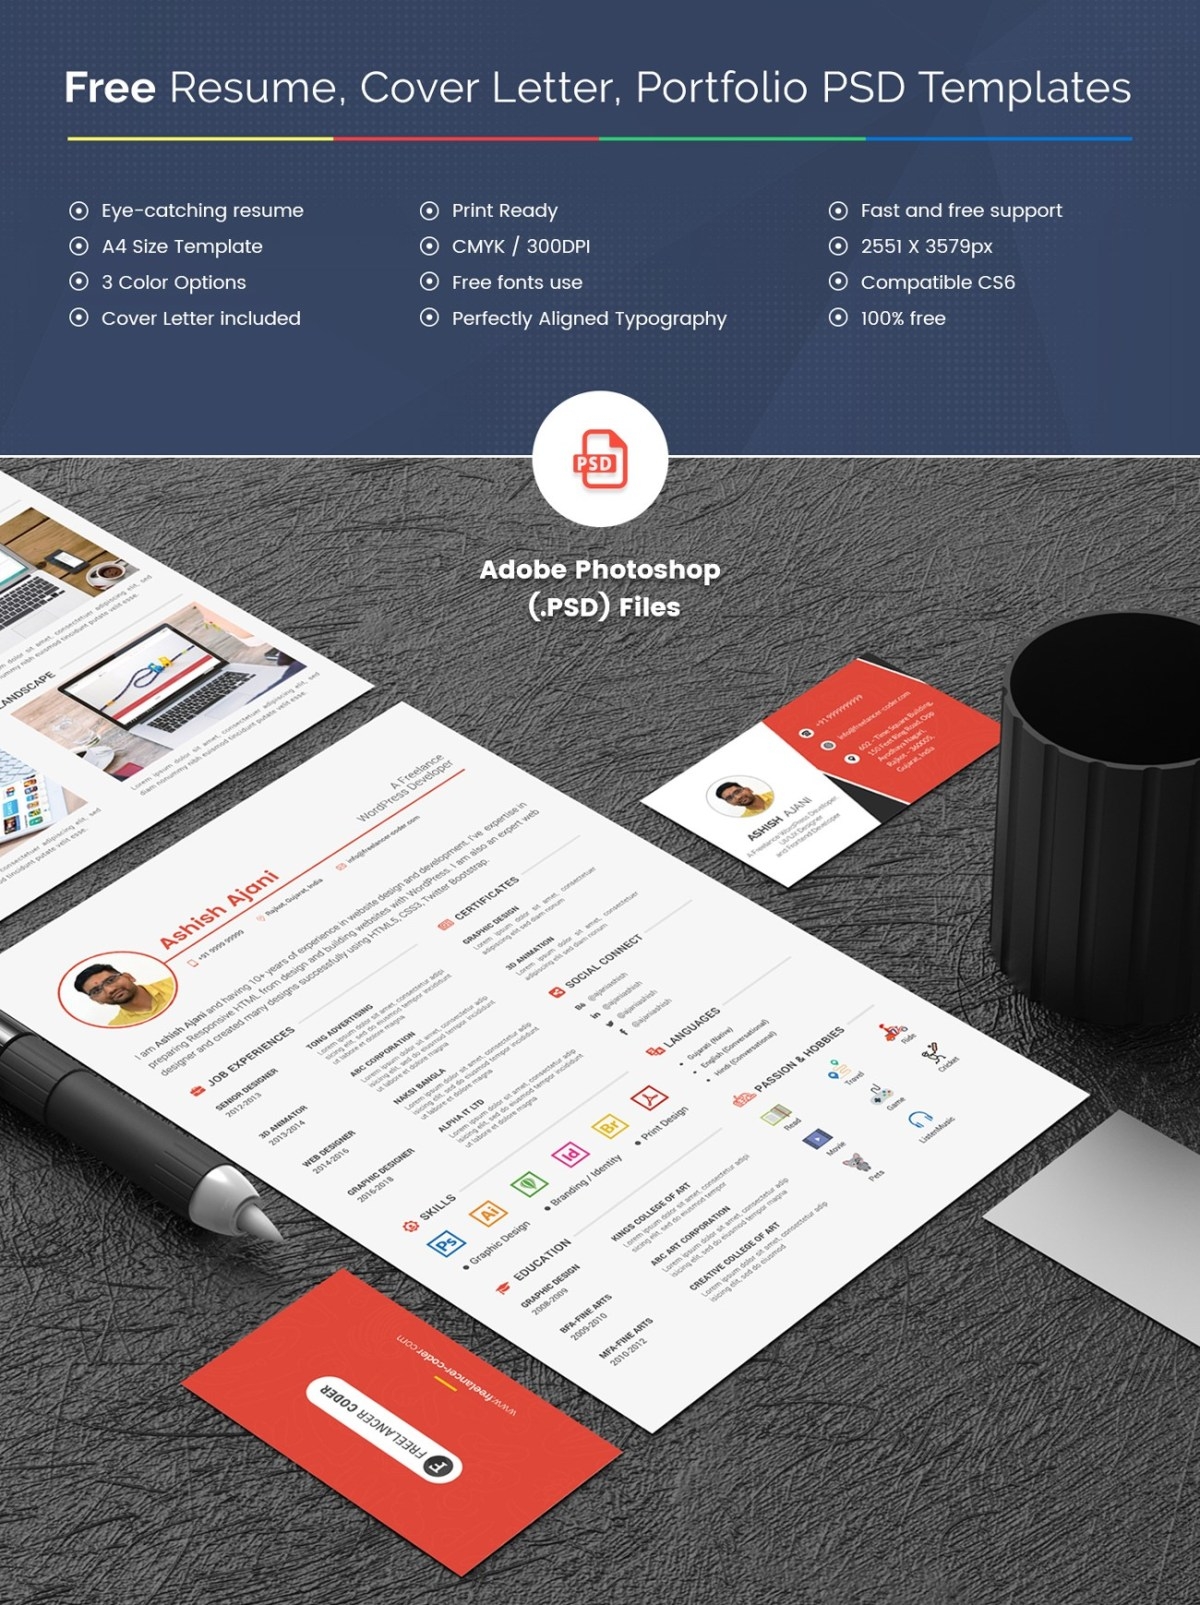 Best Free Resume Templates Of